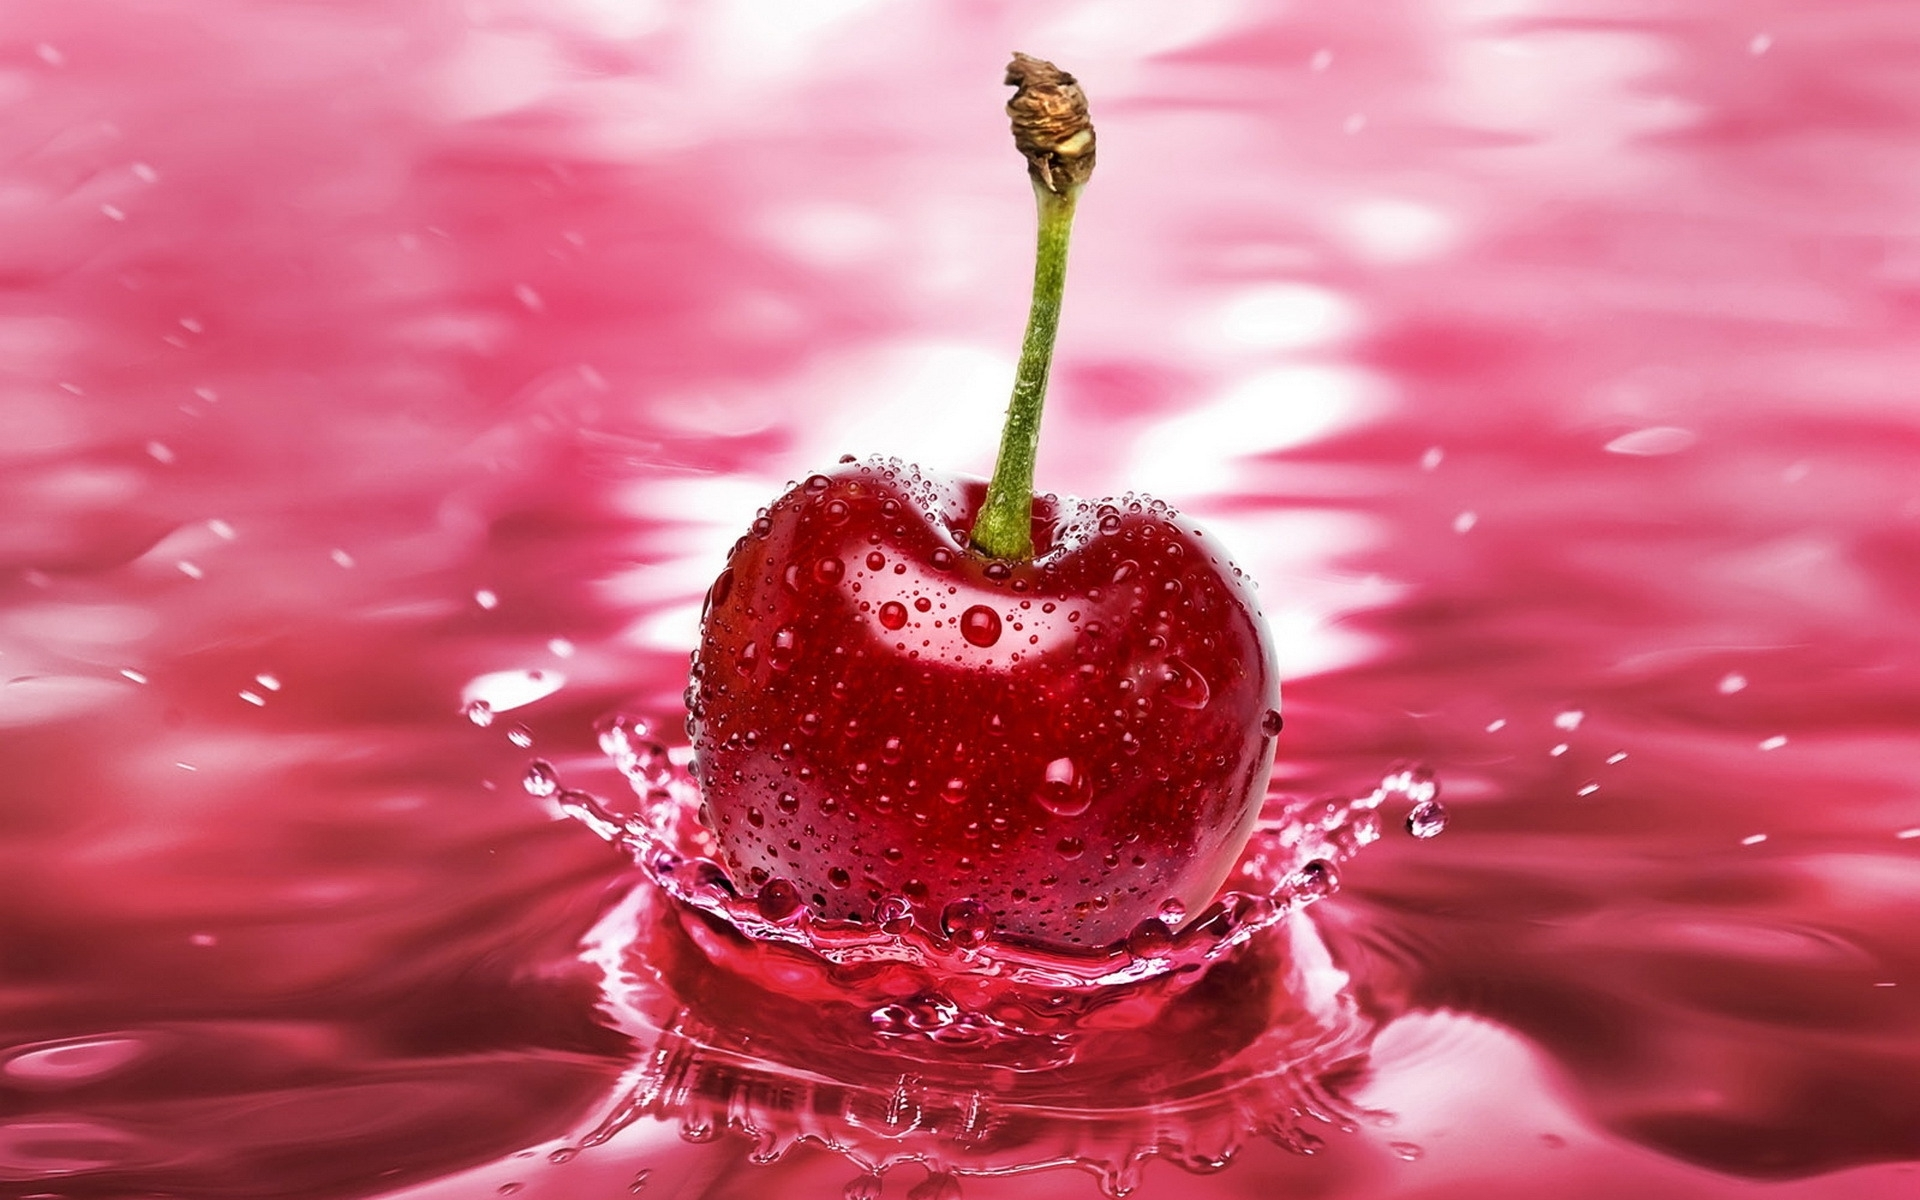 42526 download wallpaper Cherry, Objects screensavers and pictures for free